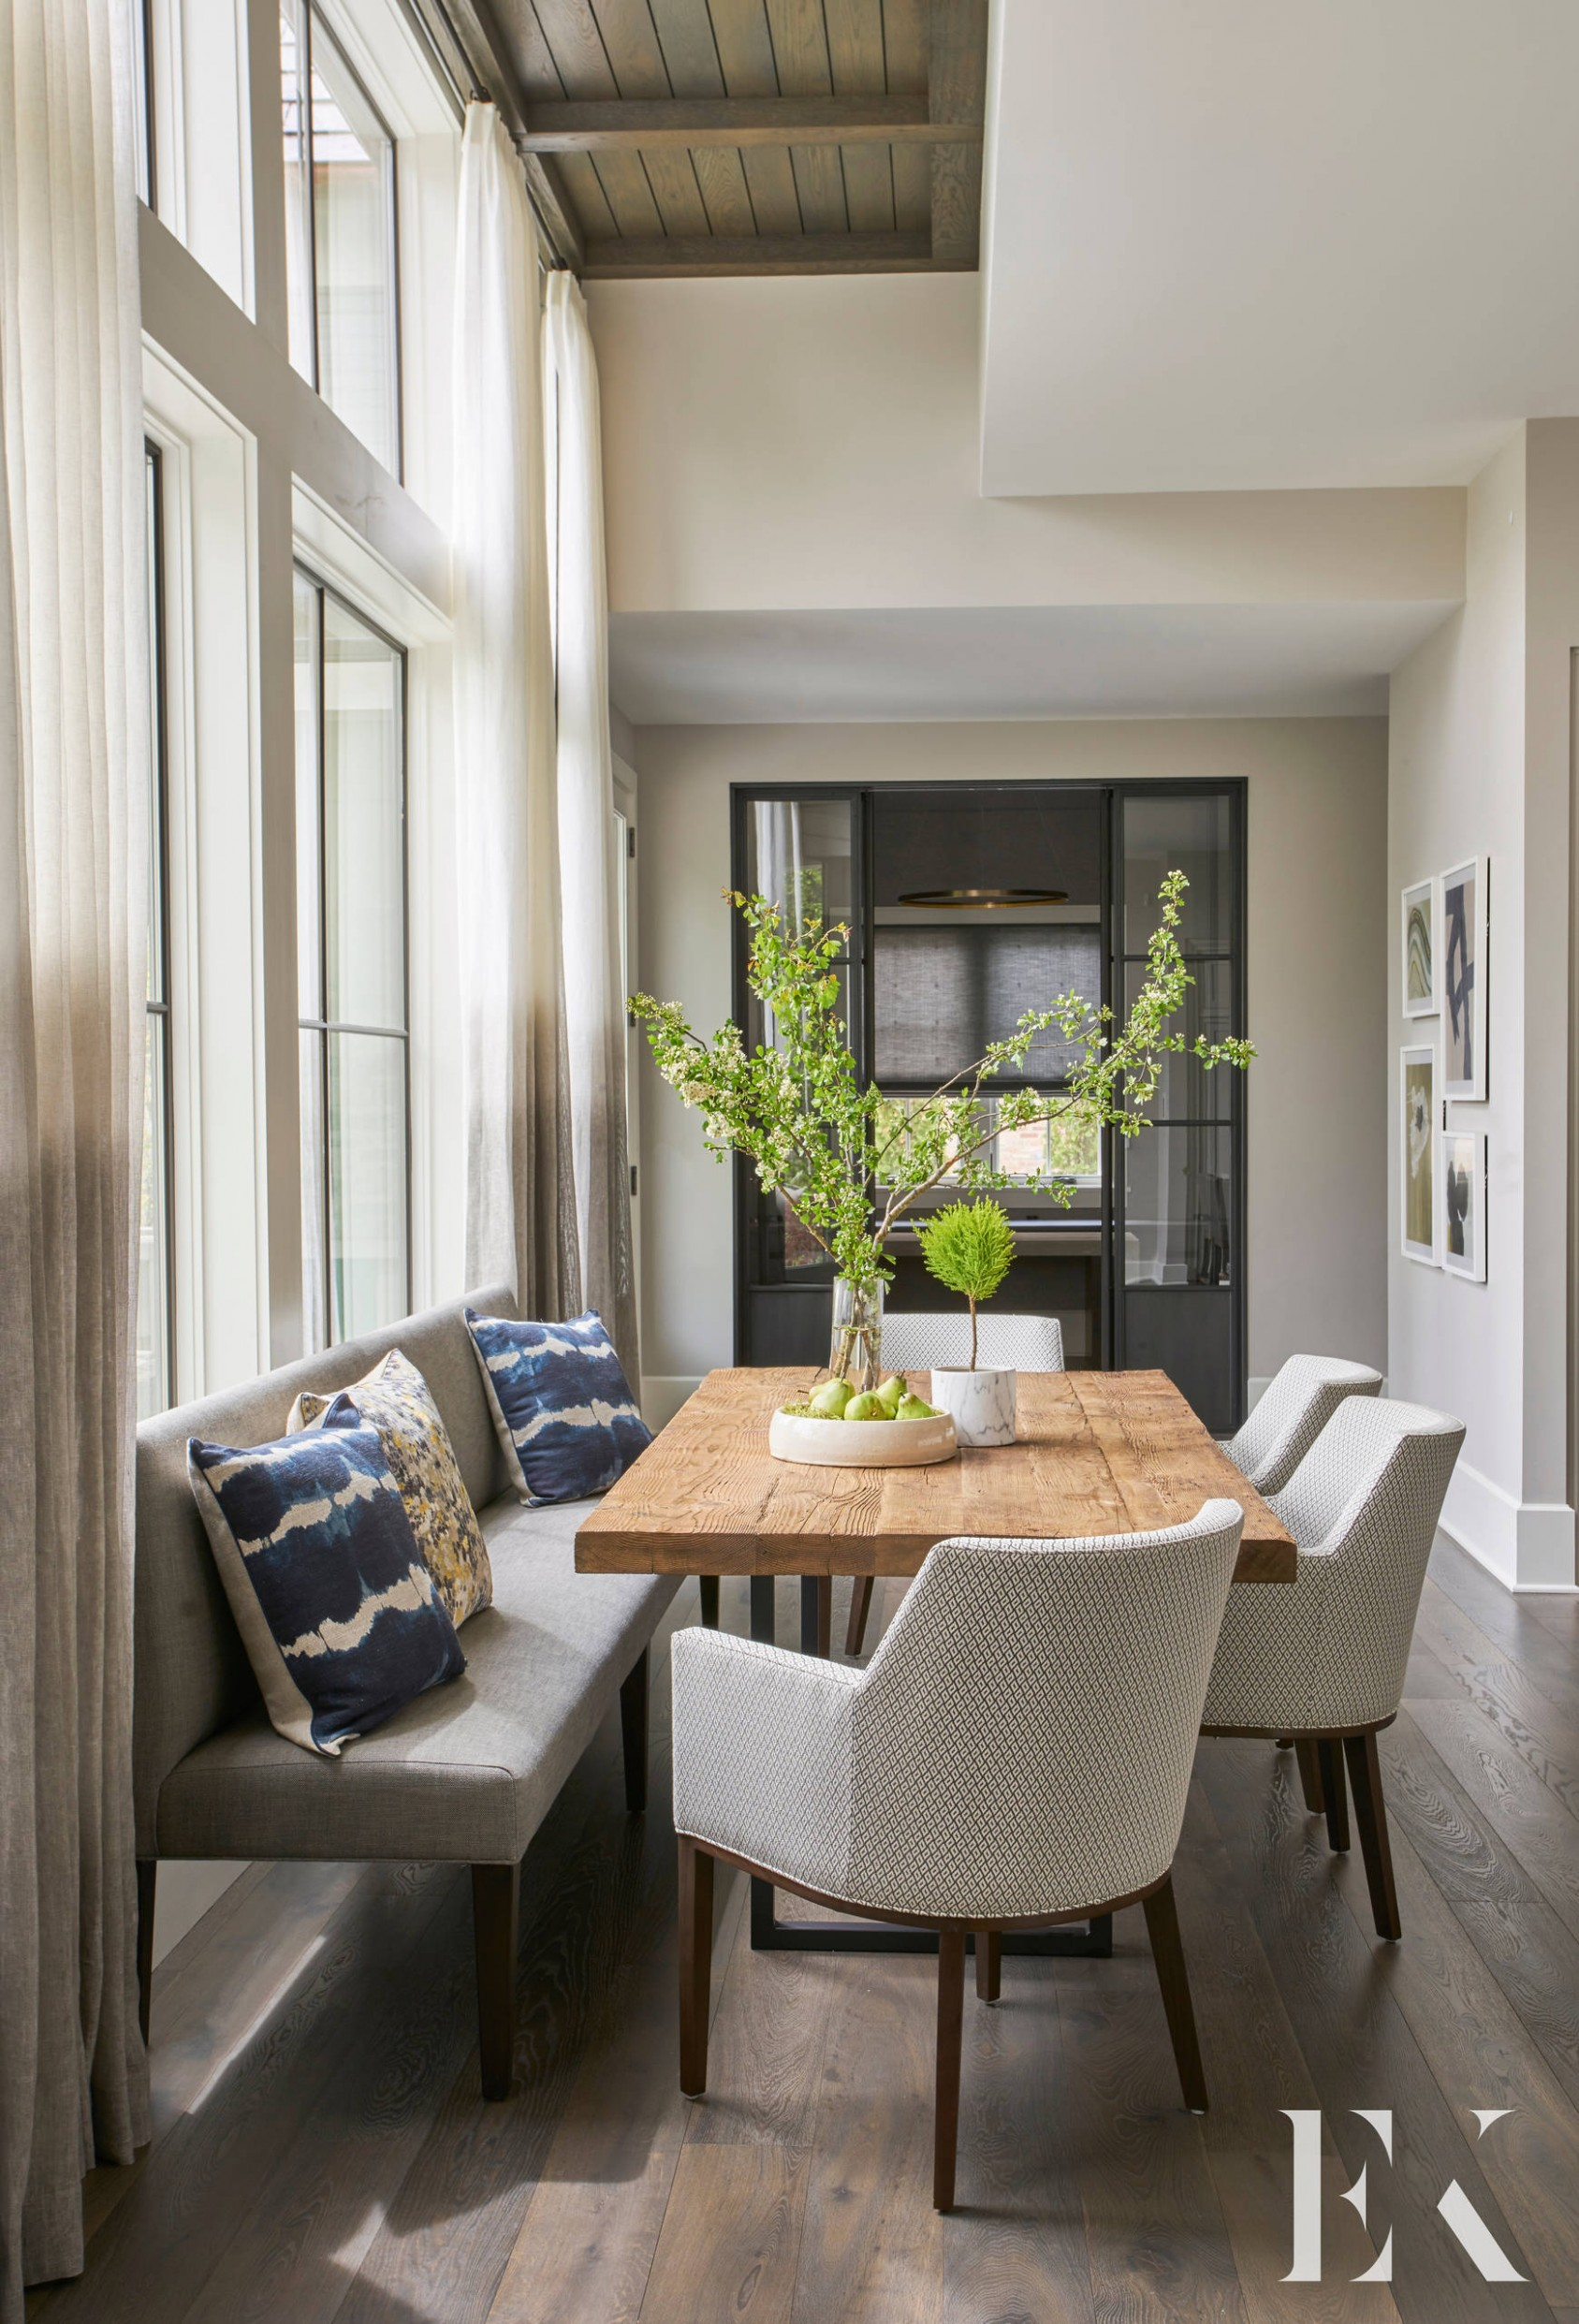 8 Beautiful Modern Dining Room Pictures & Ideas - November, 8  - Dining Room Ideas Modern